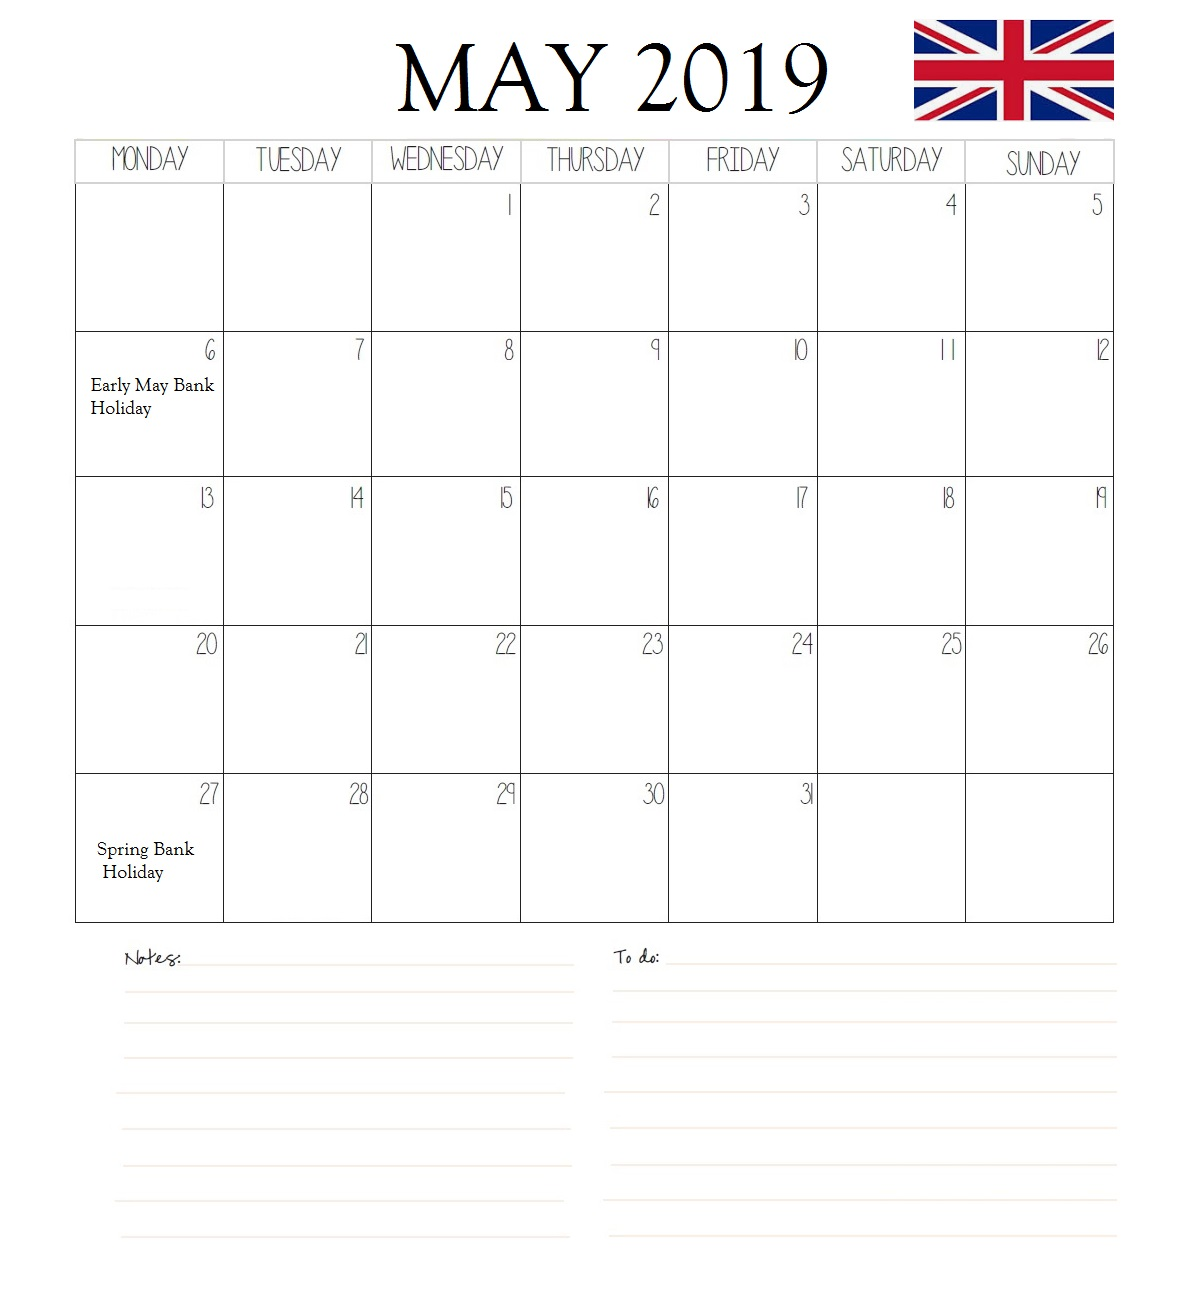 The United Kingdom May 2019 Holidays Calendar